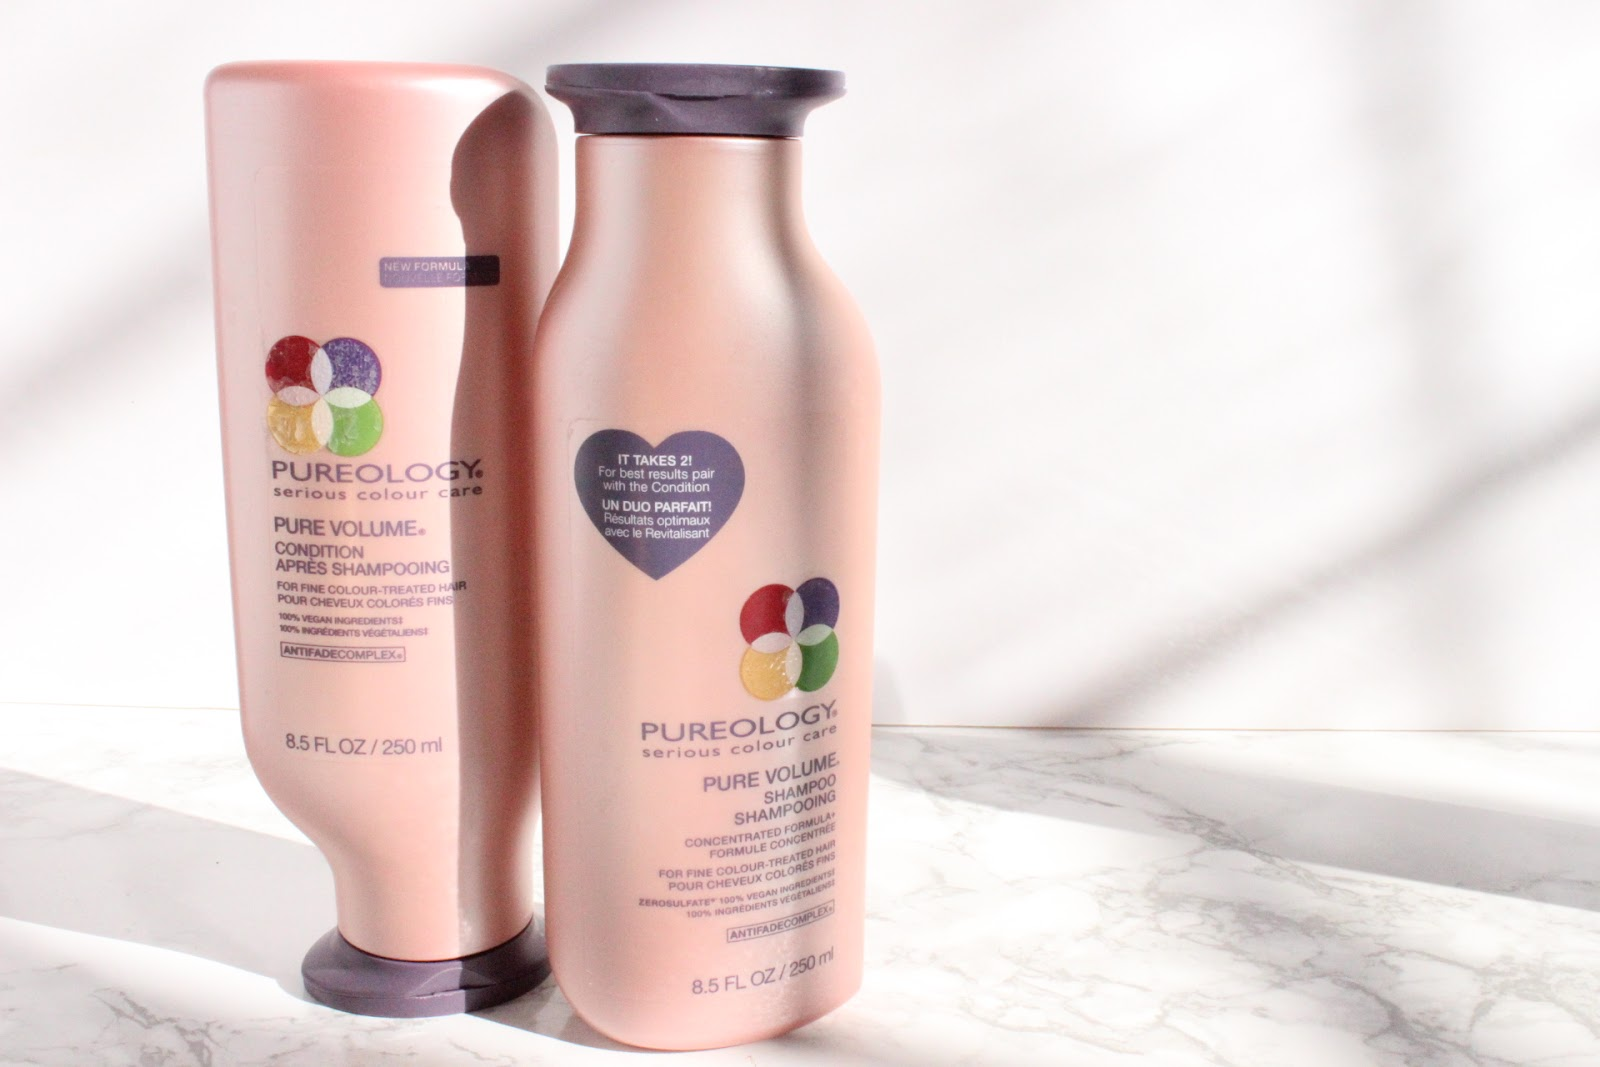 Pureology Pure Volume Shampoos and Conditioner